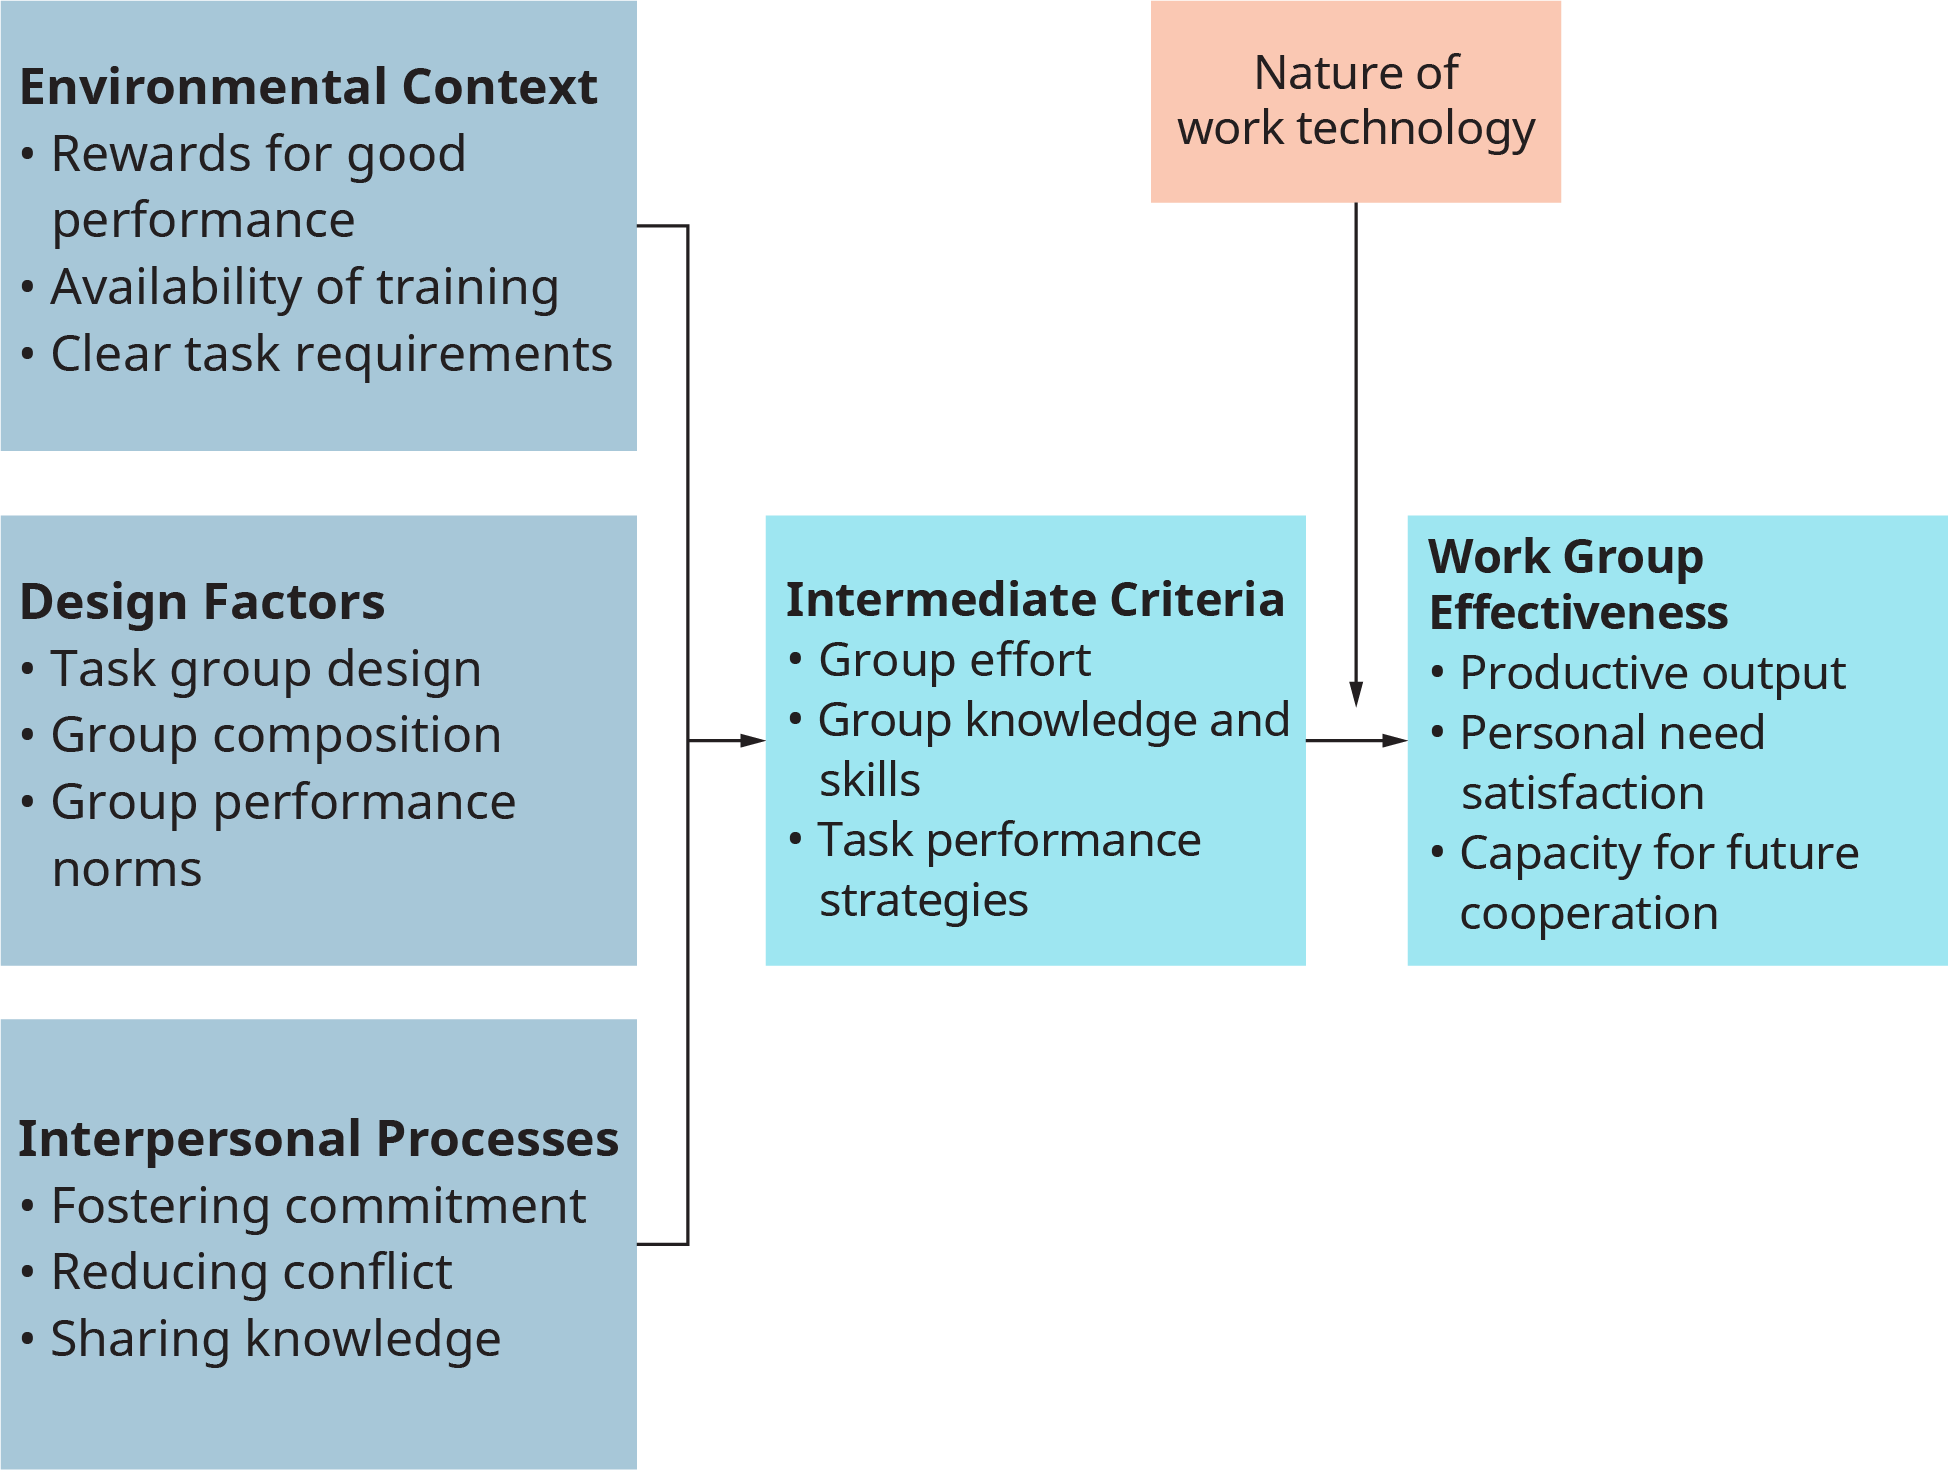 A diagram shows the determination of work group effectiveness.